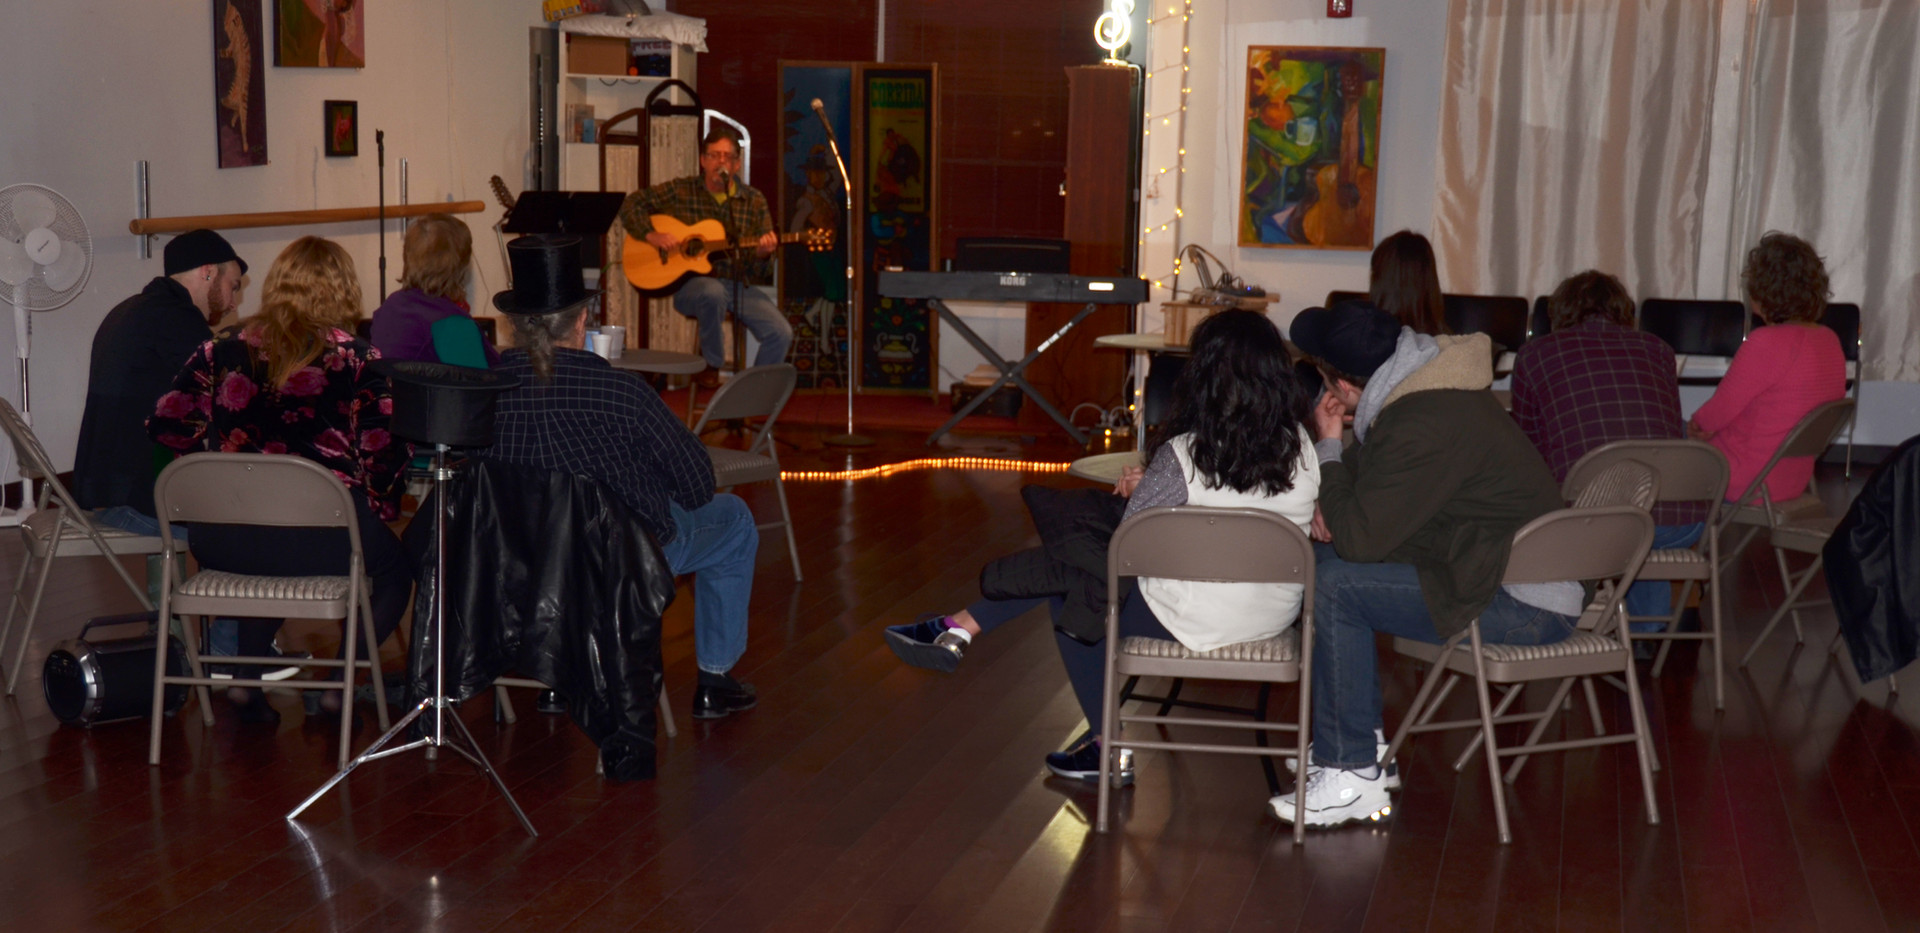 Our largest Open Mic yet